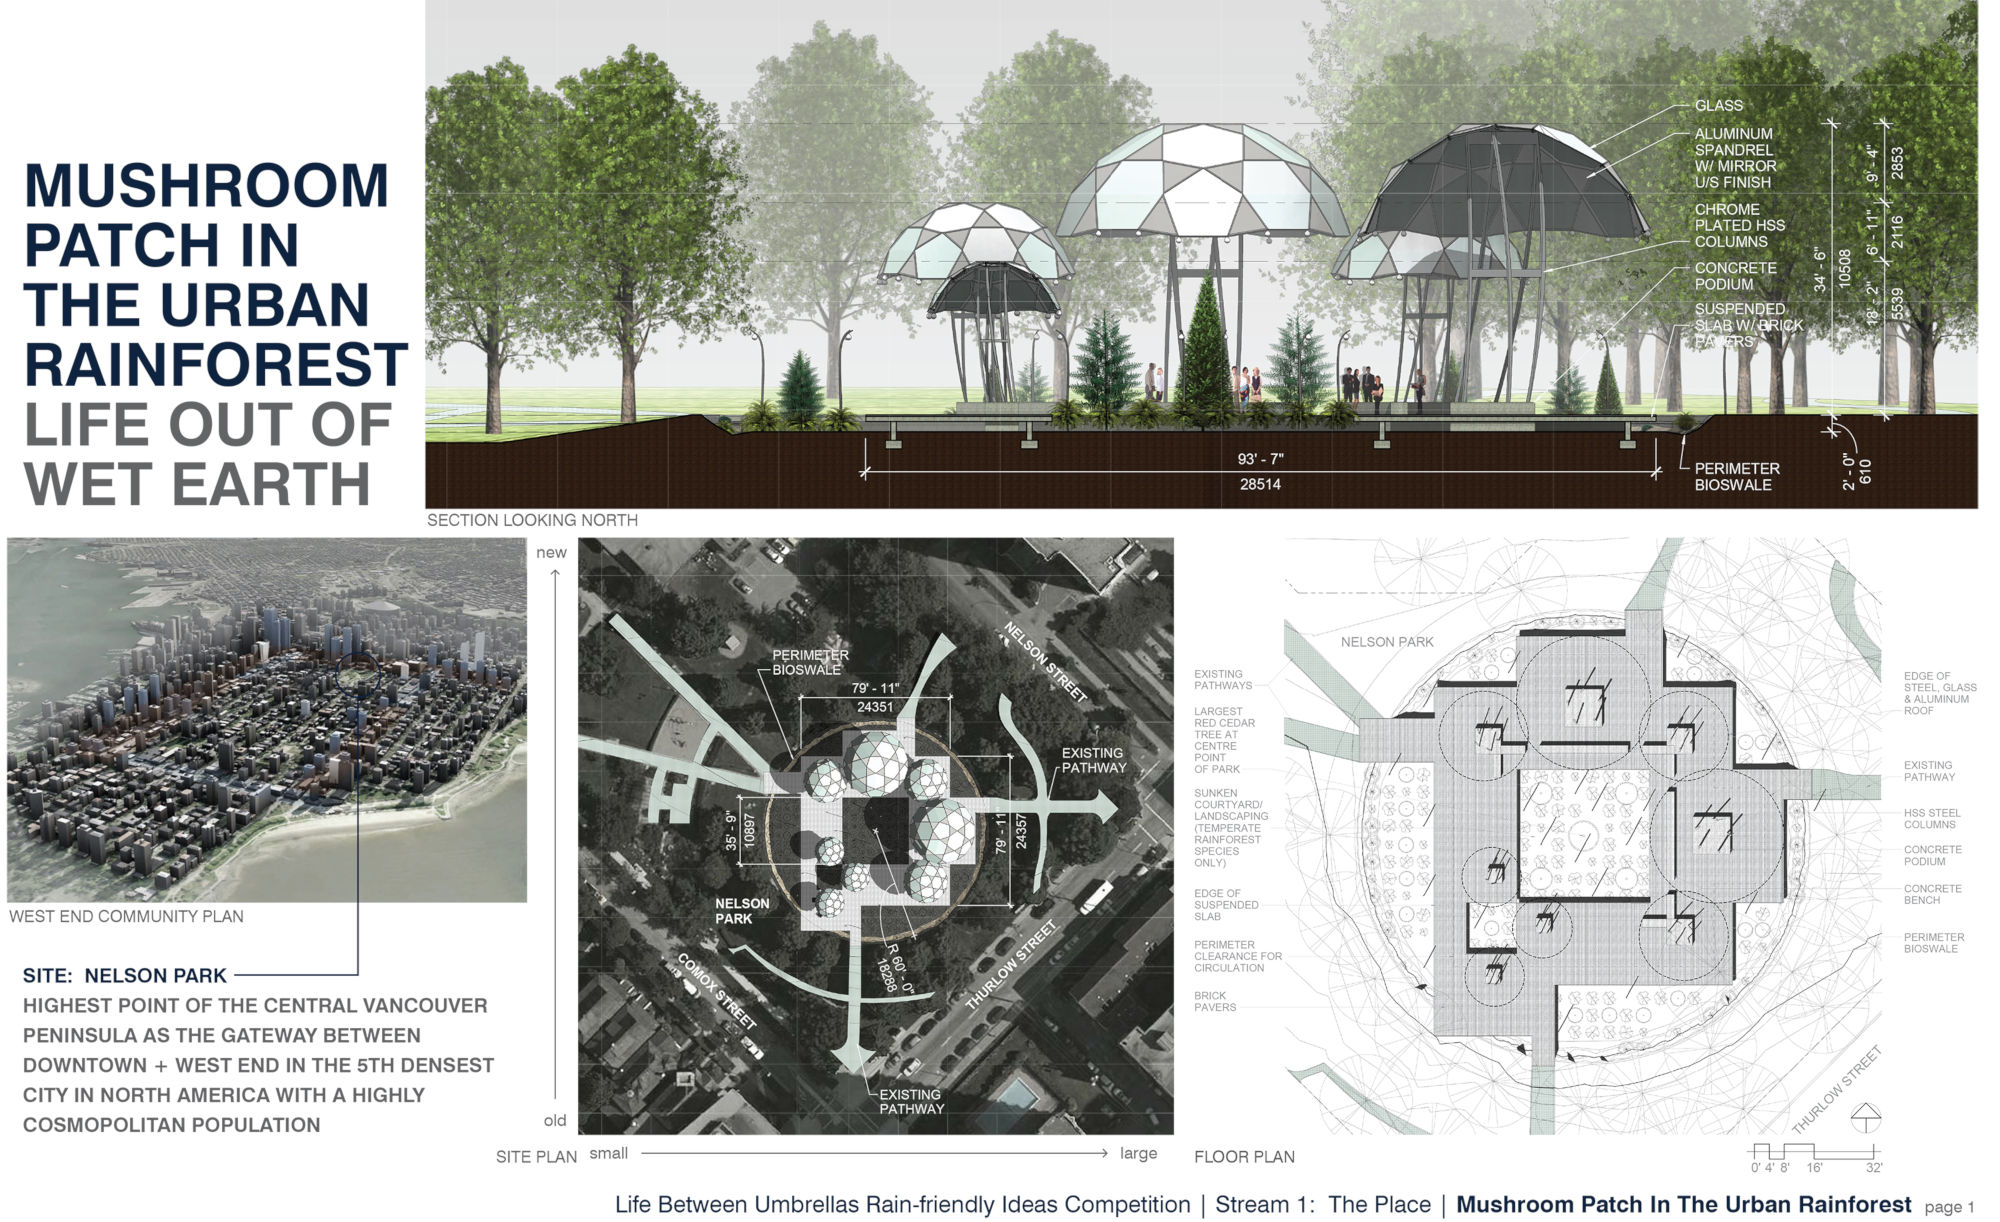 A17 - RAINFRIENDLY-Siu_Architecture_Inc-p1-2-illustrations - 11-1.jpg